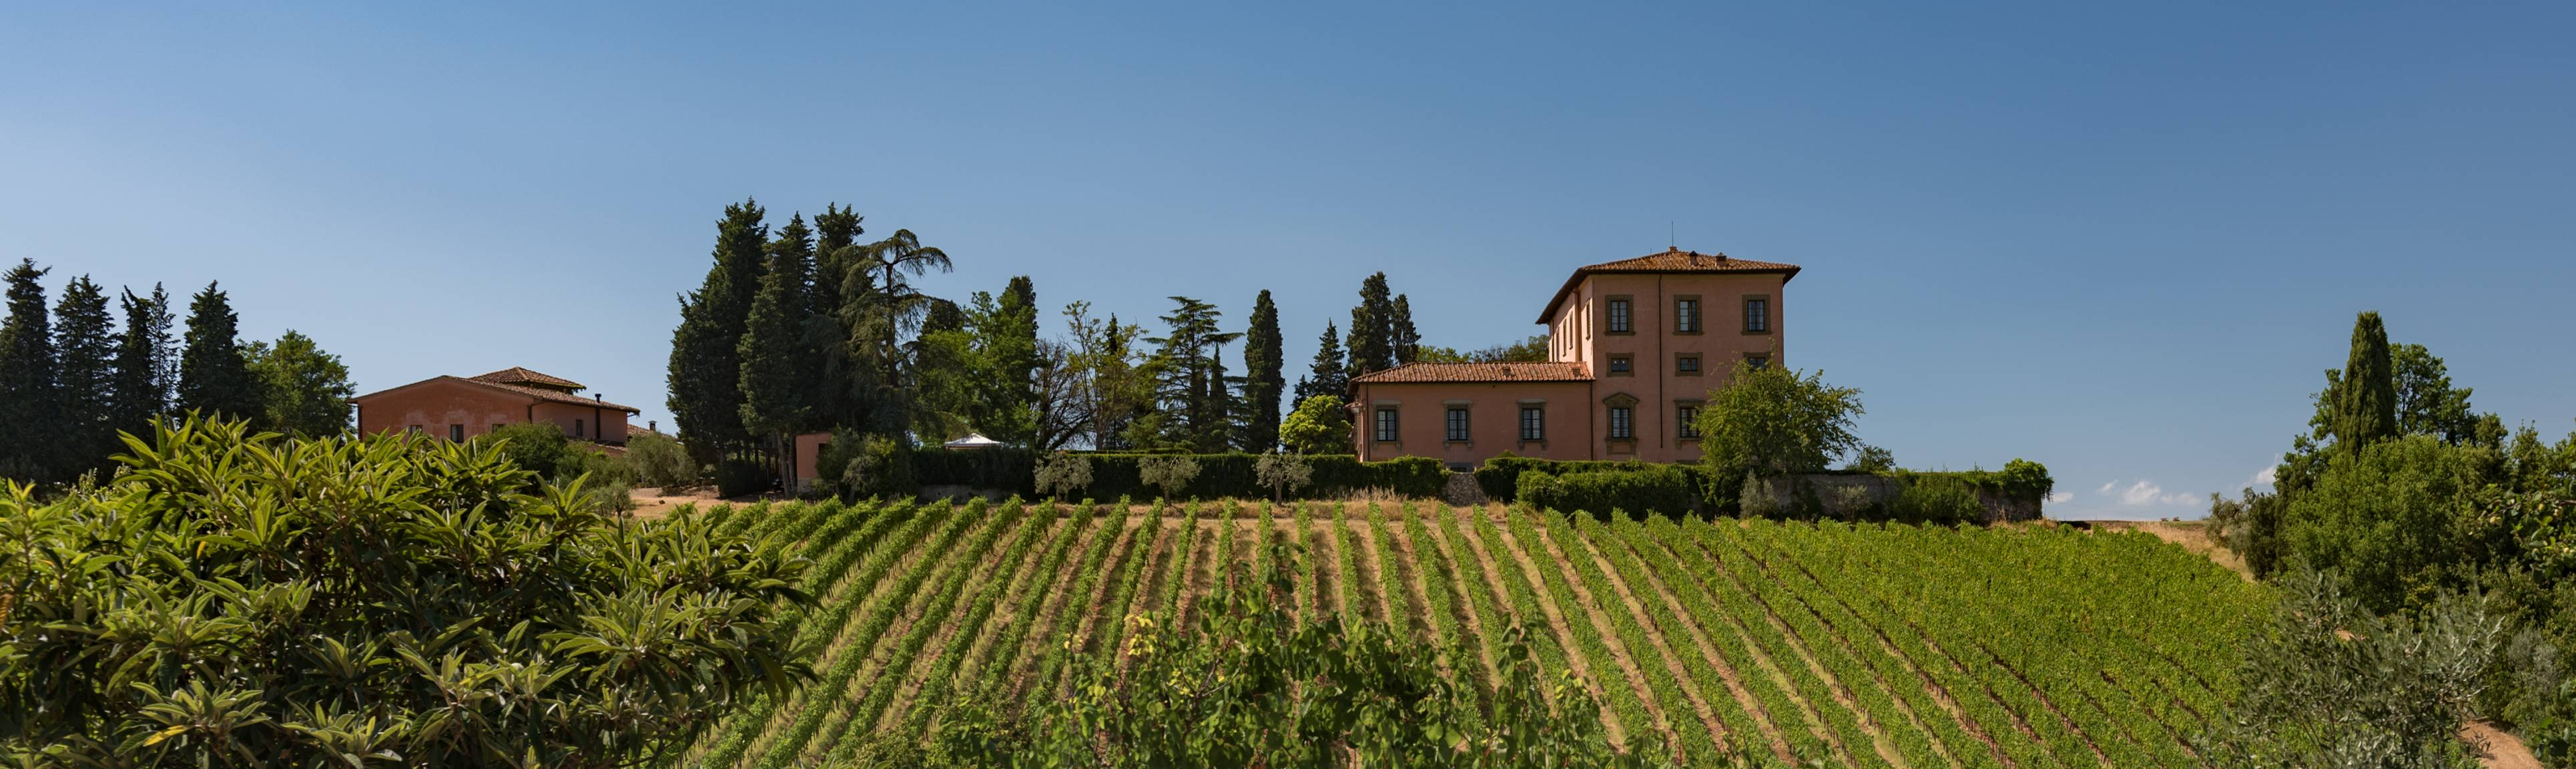 View of winery atop a hill in the Chianti Region of Italy